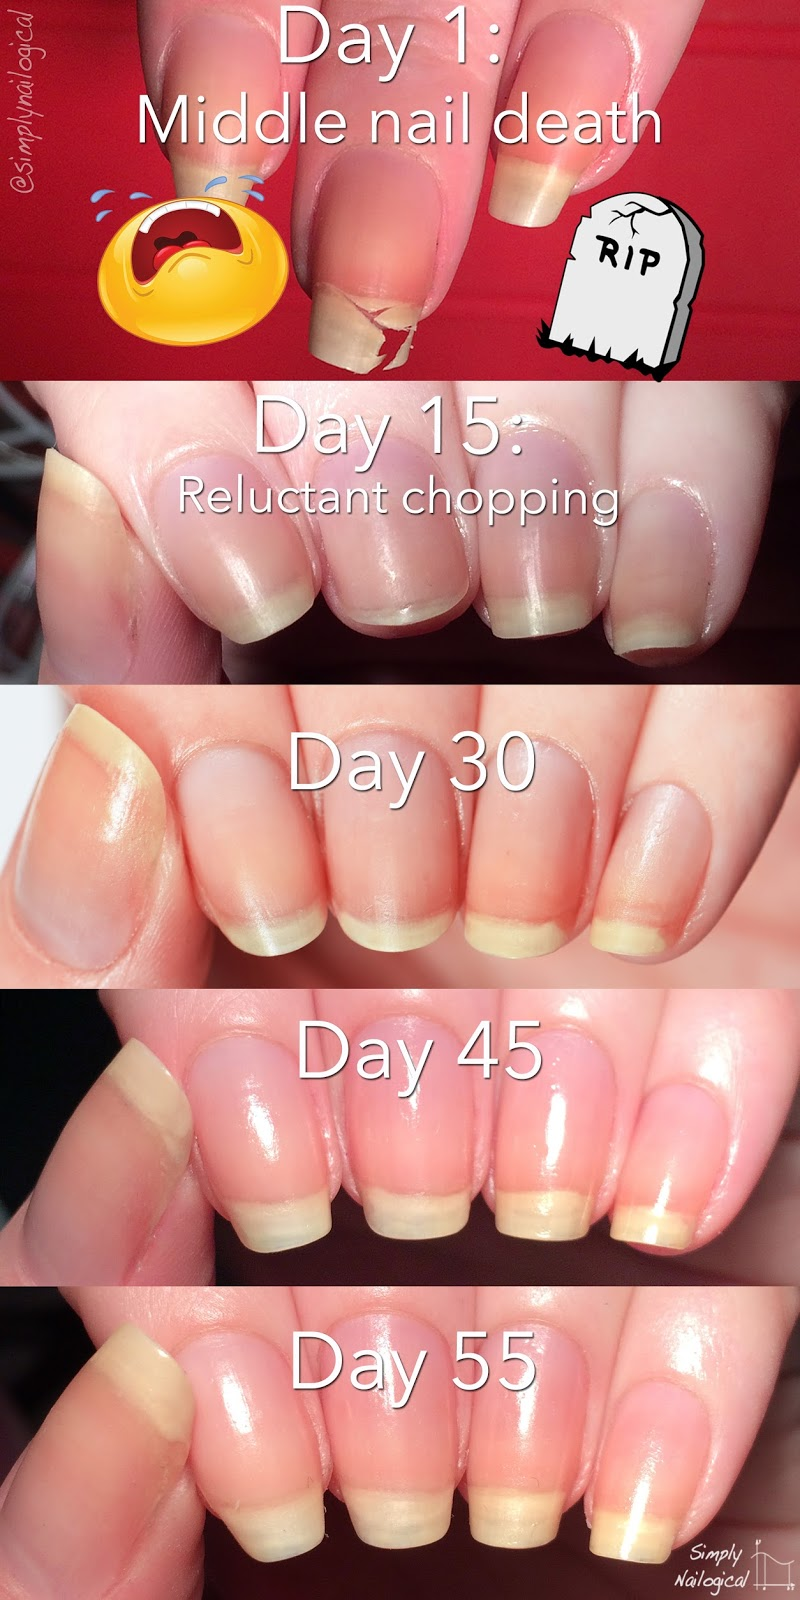 Can you cut your nails with gel polish